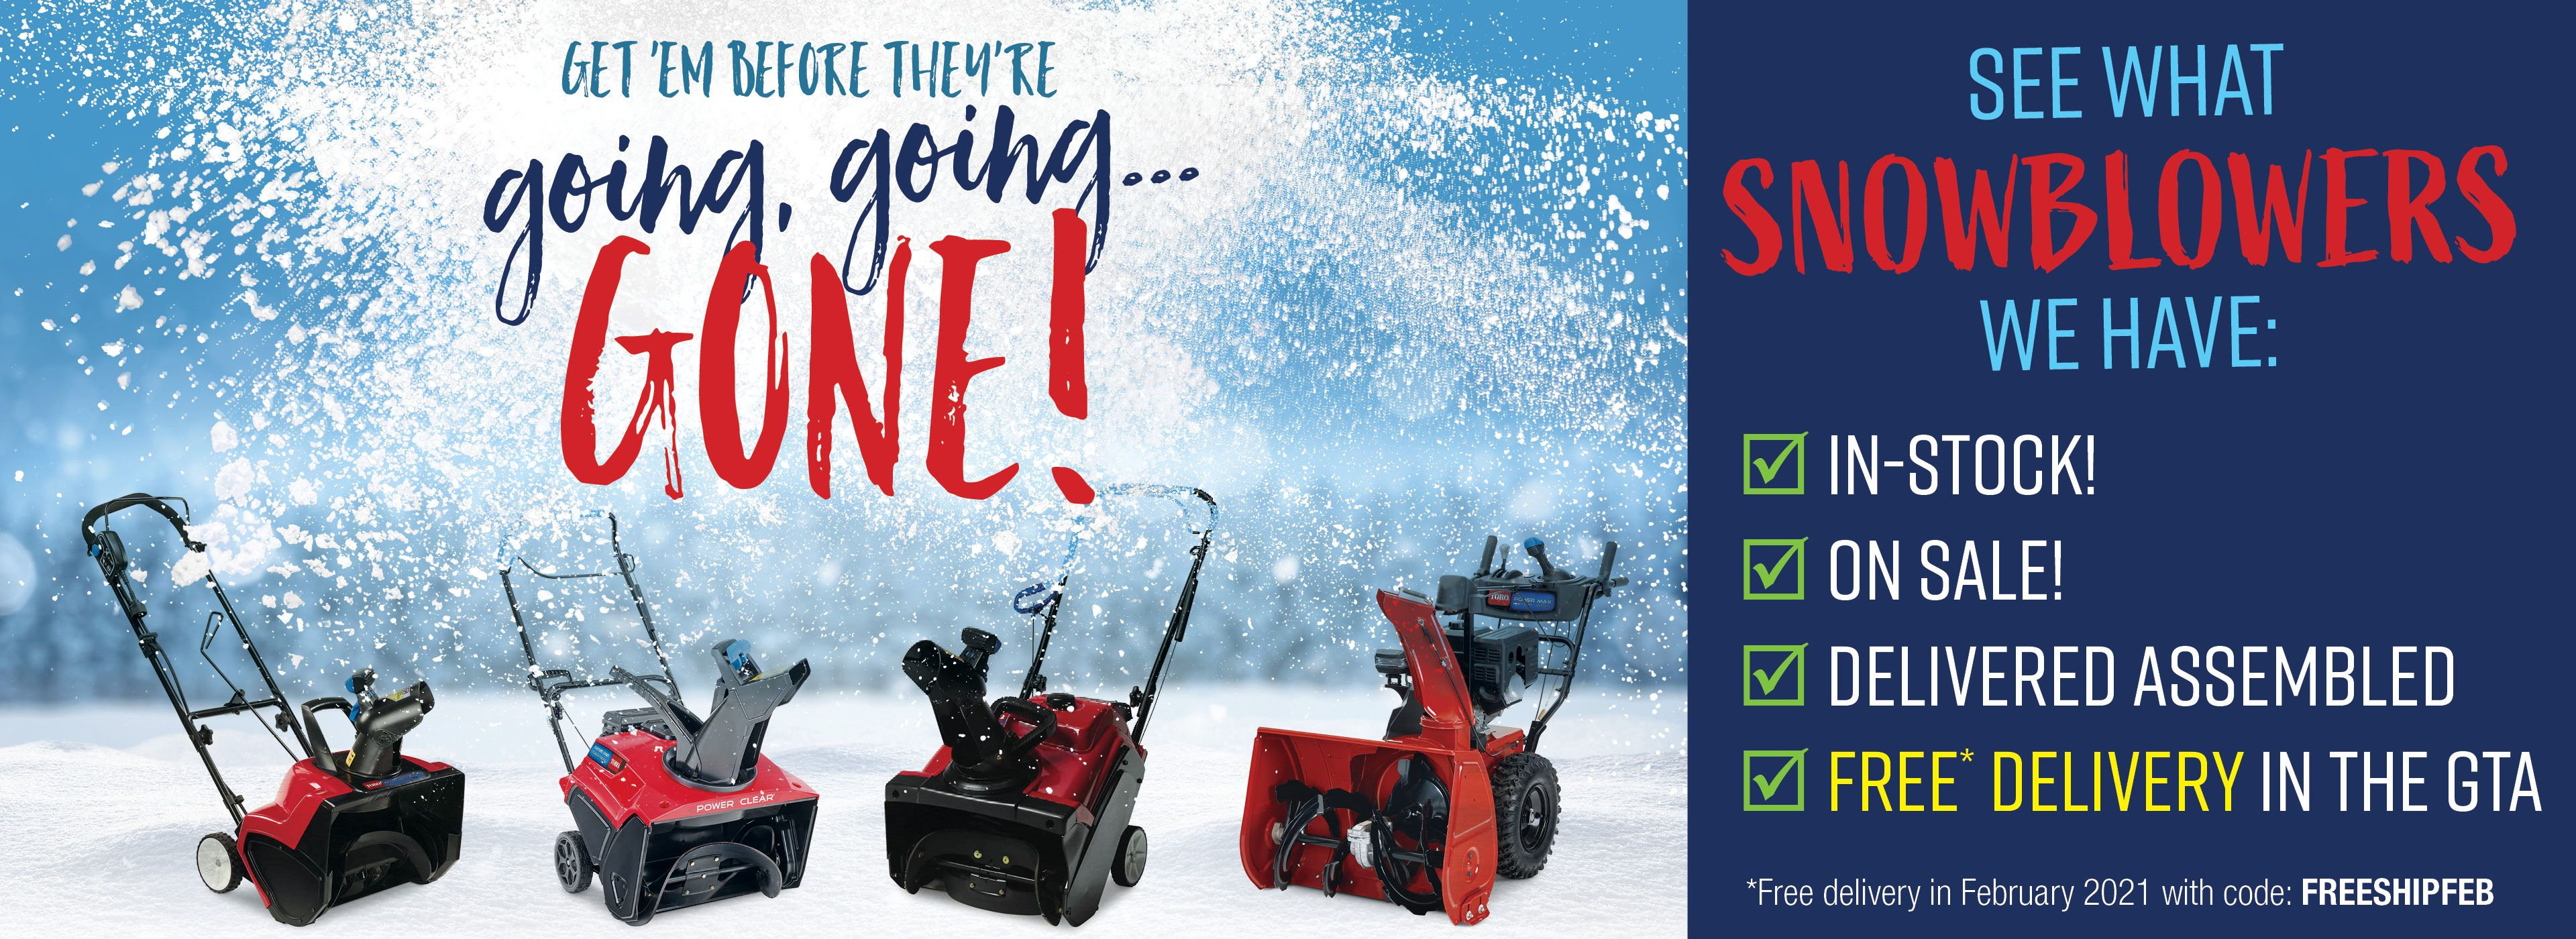 FREE SNOWBLOWER SHIPPING IN THE GTA